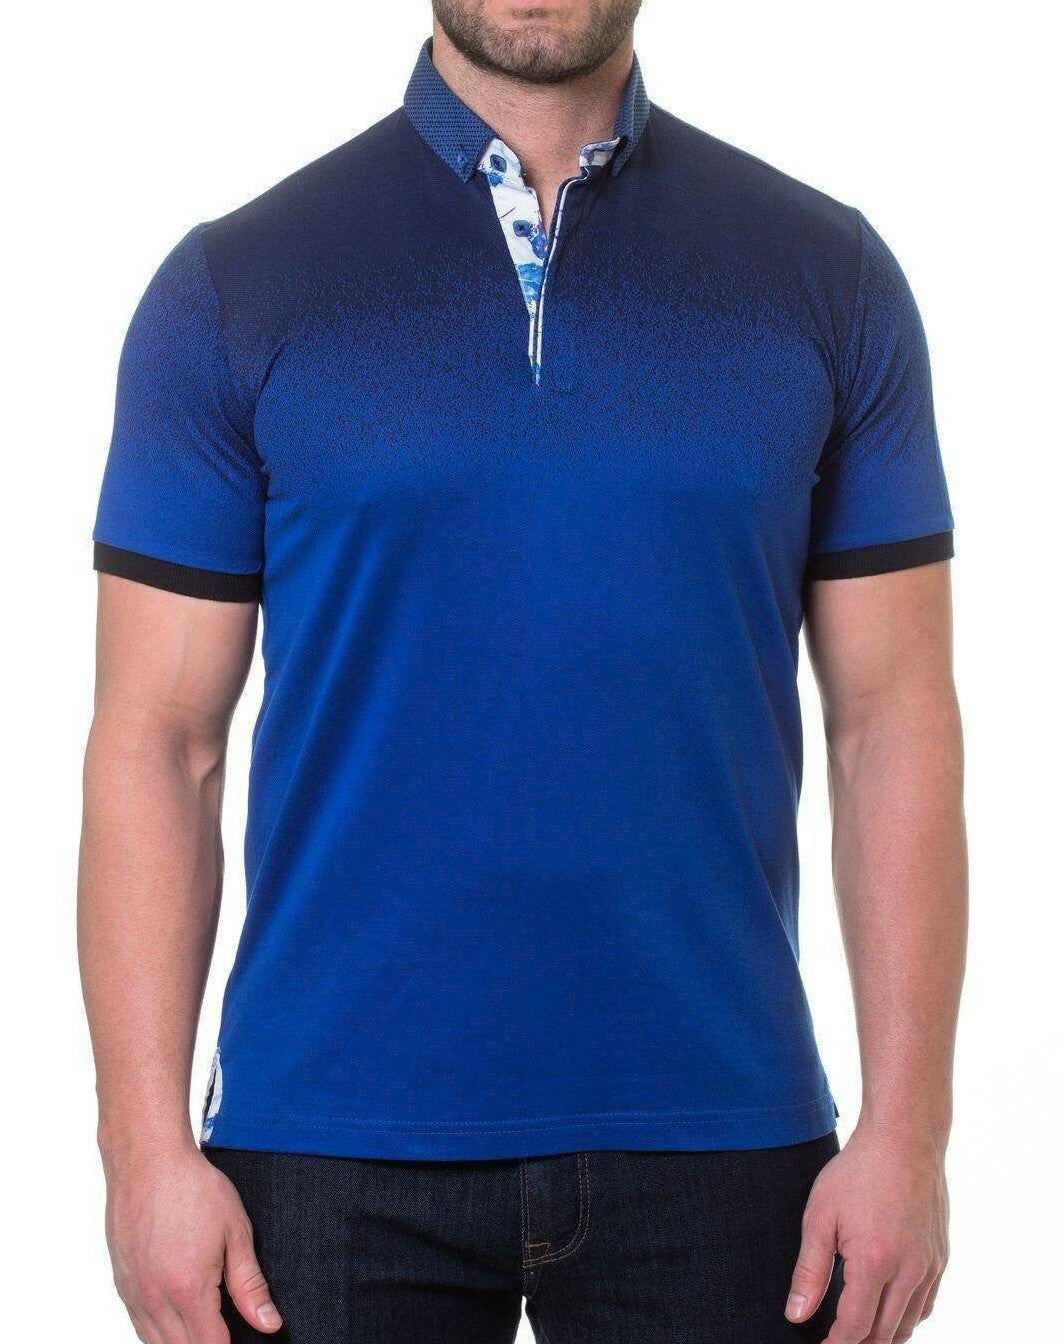 Degrade Navy Men's polo shirt by Maceoo - K T Dezigns, Polo Shirts, product_vendor]